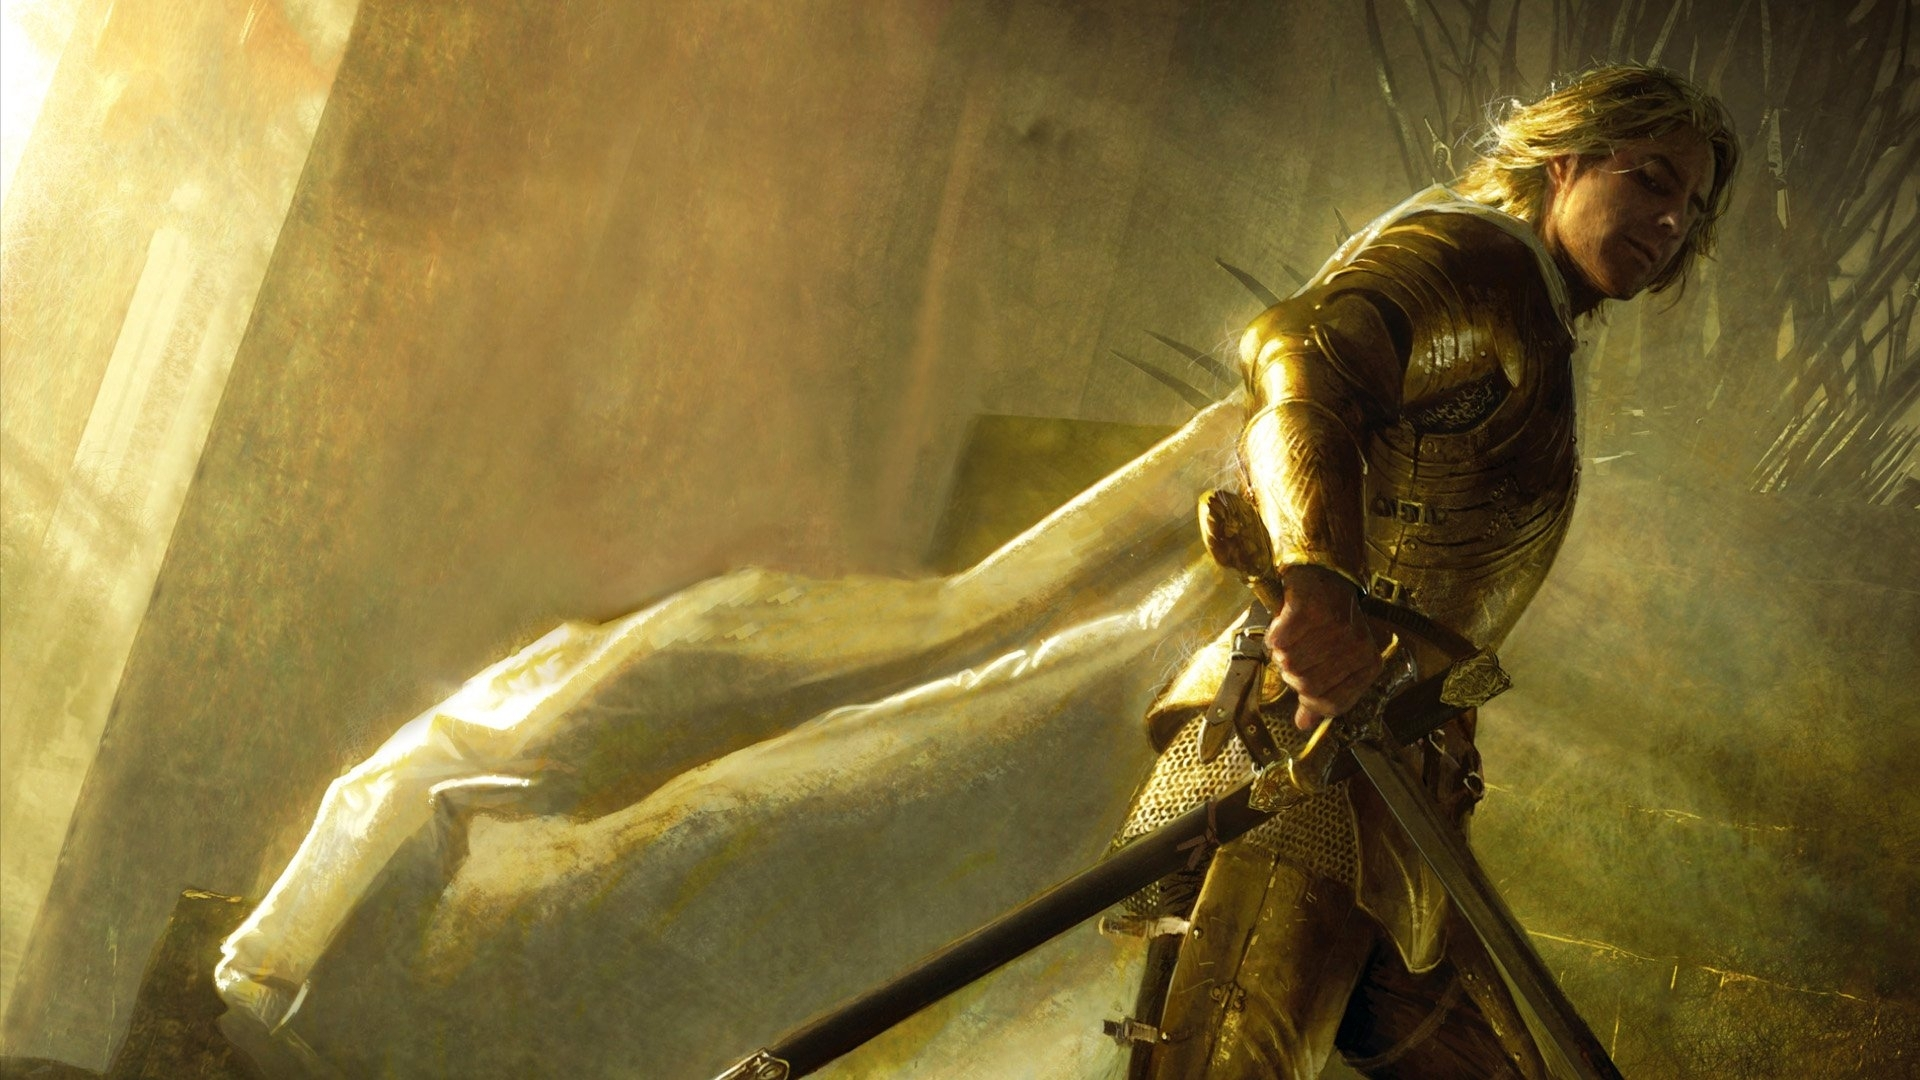 64 a song of ice and fire hd wallpapers | background images